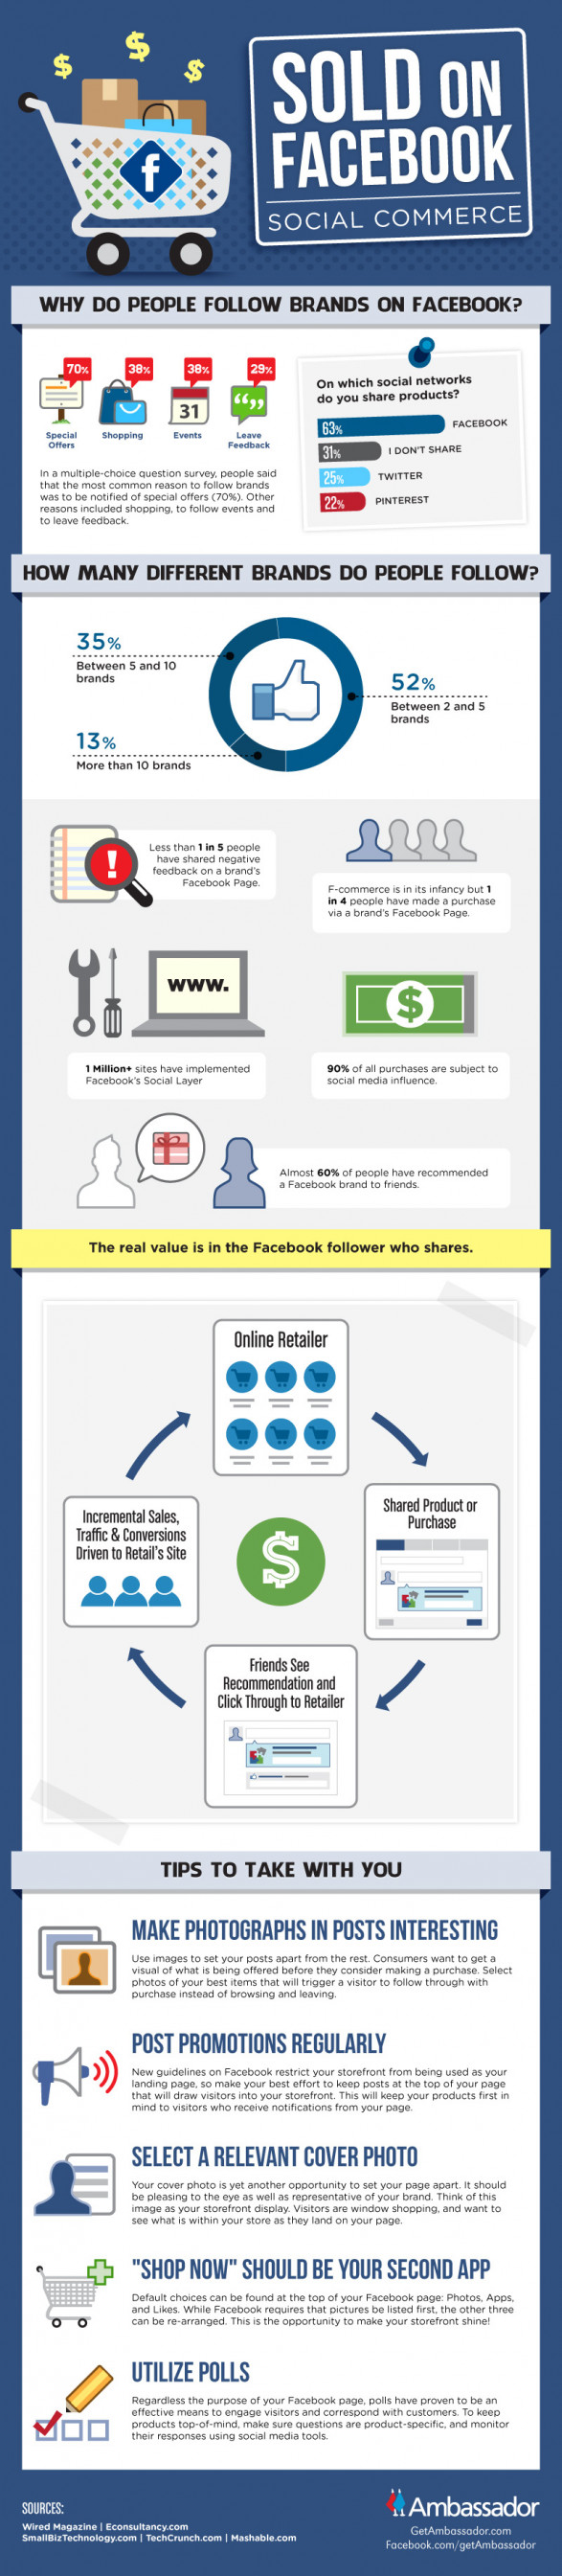 Sold On Facebook - Social Commerce